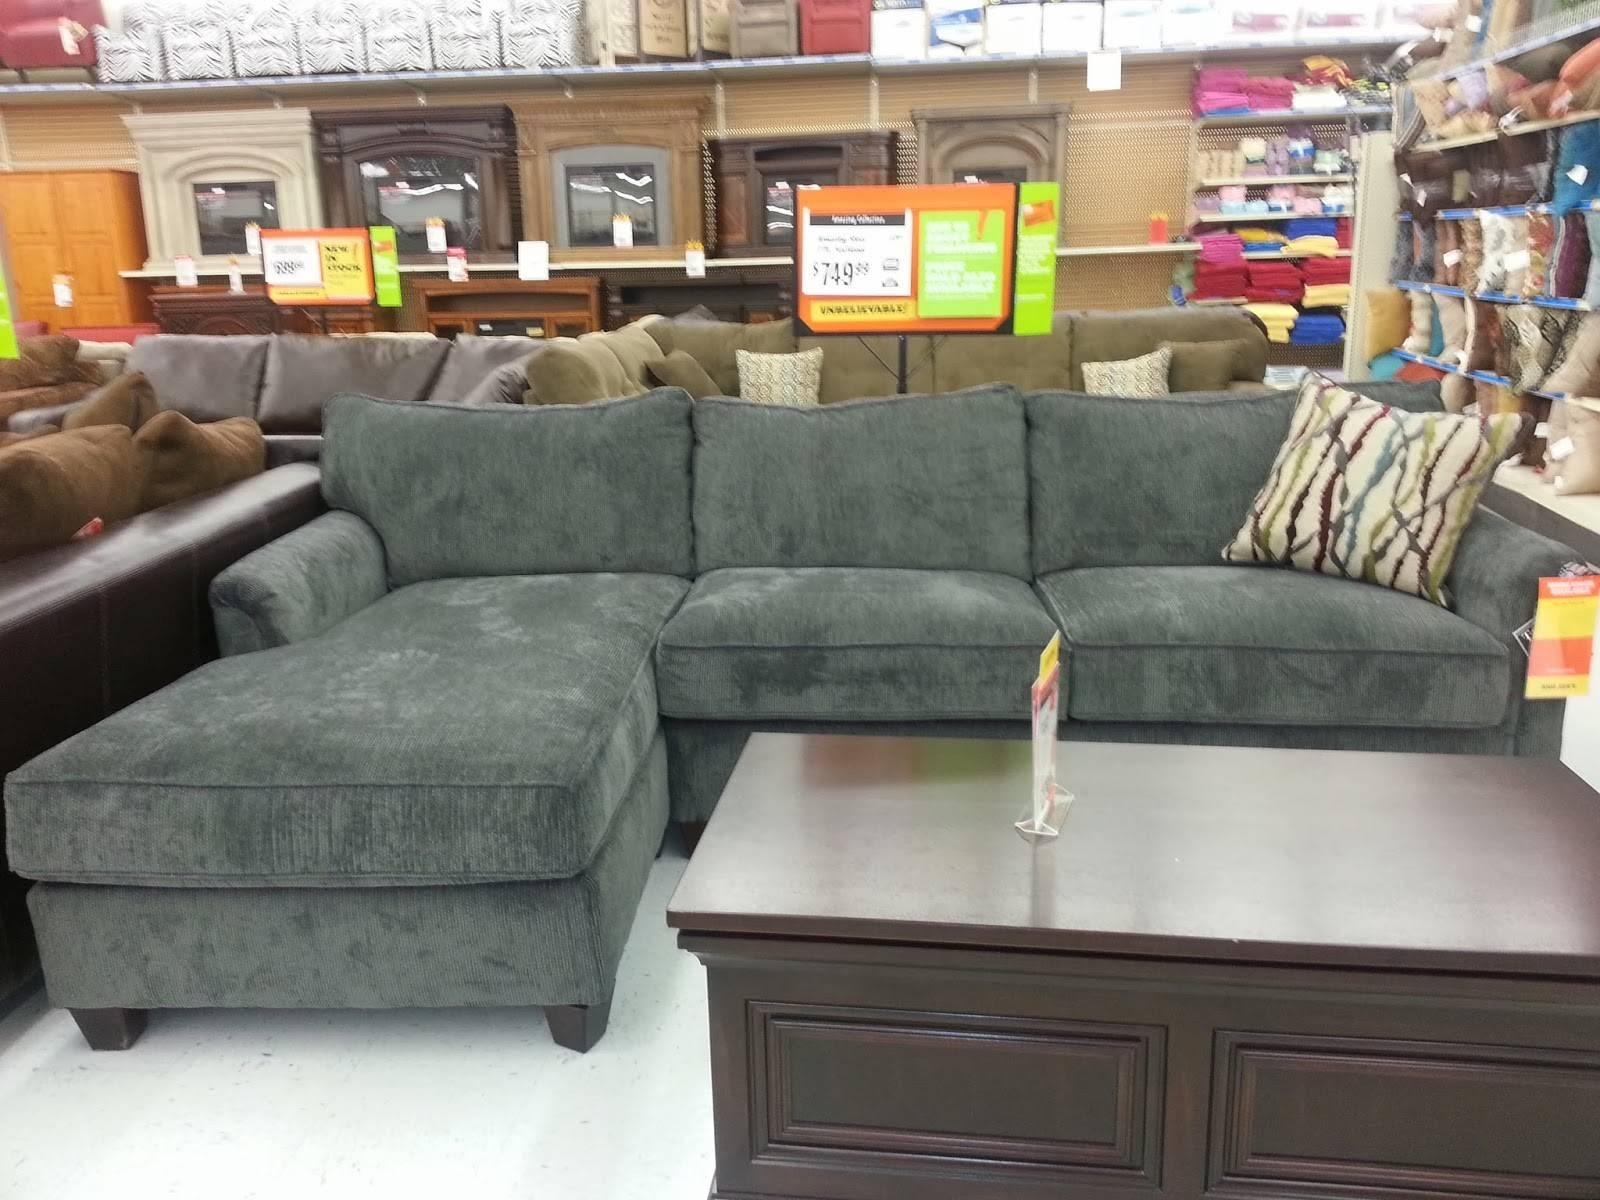 Big Lots Sofa Big Lots Bakersfield Big Lots Omaha Biglots Furniture Full  Size